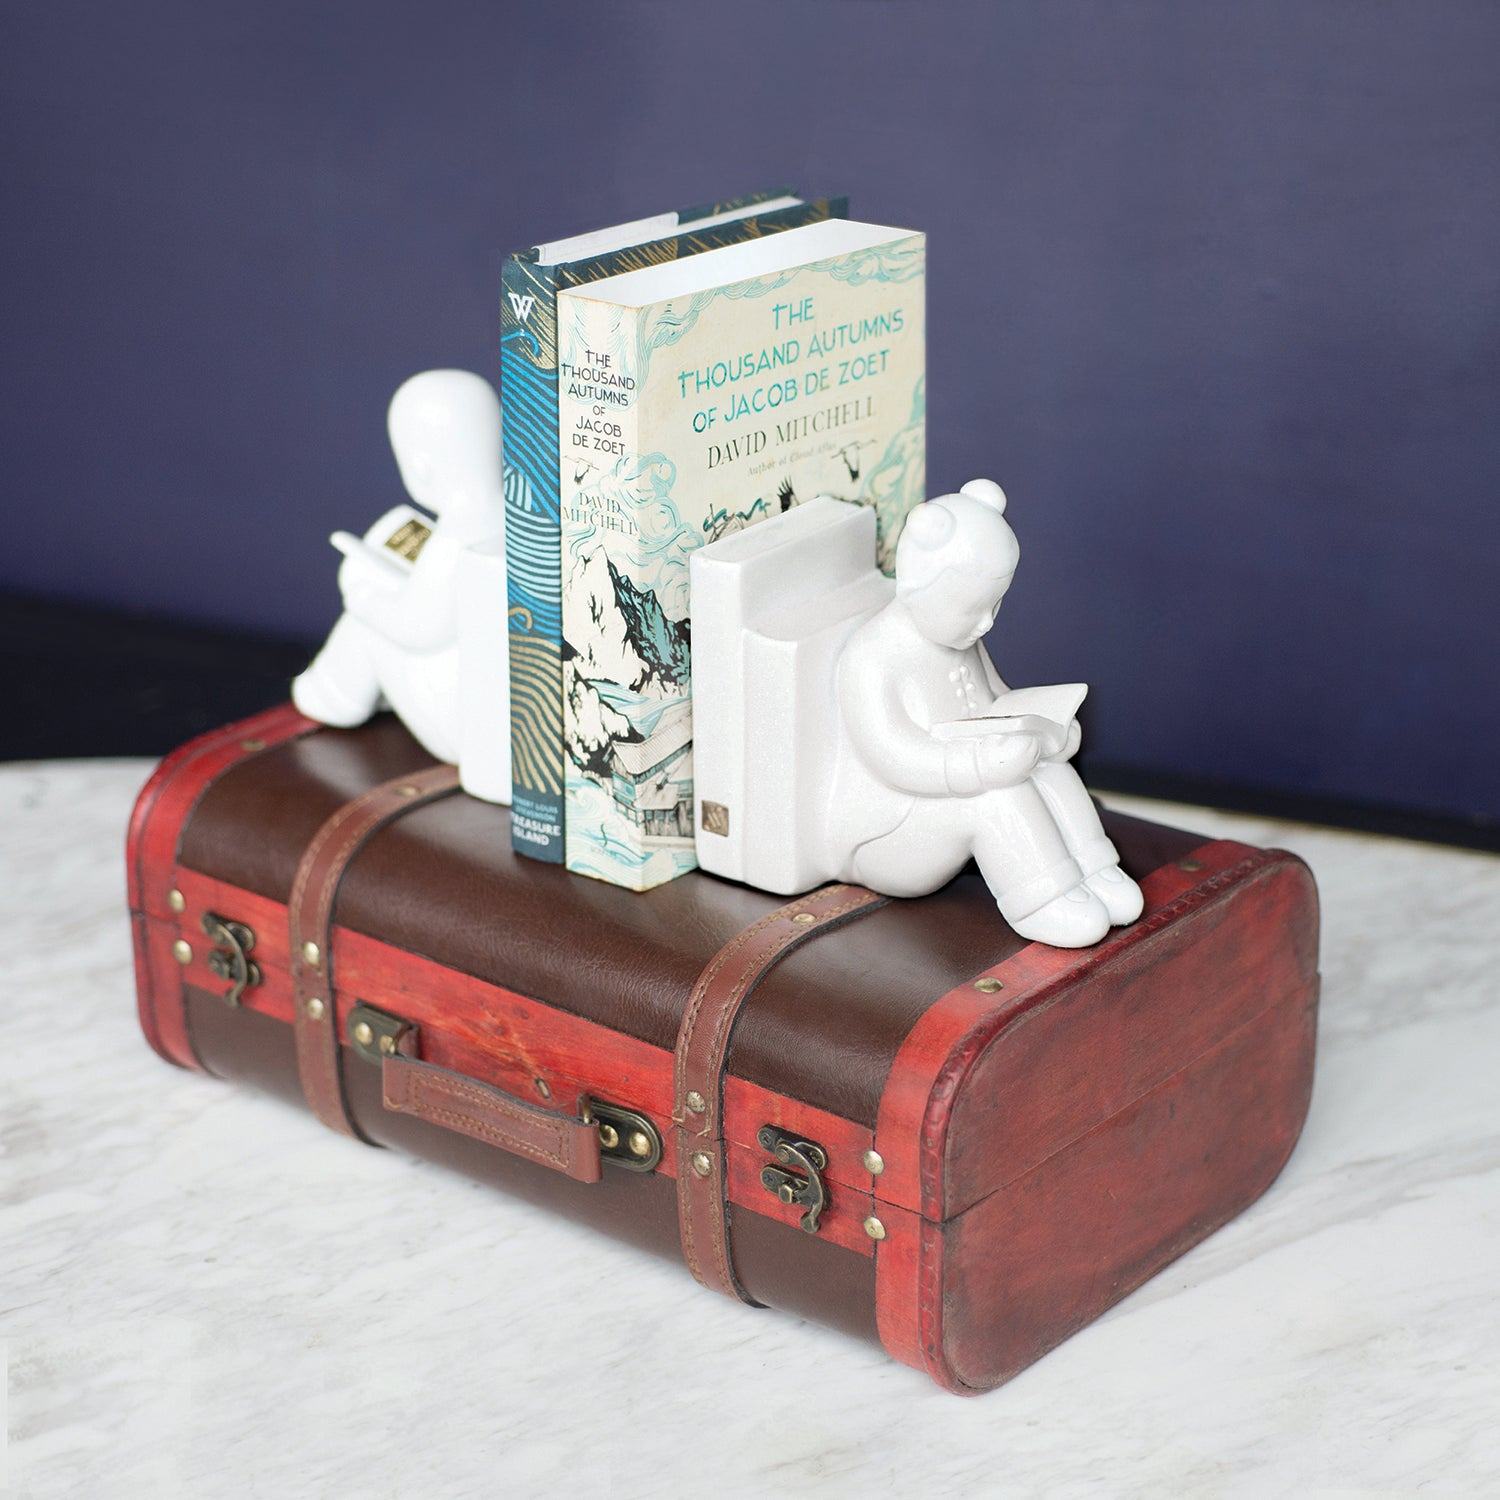 Back To The Books Bookend With Trunk (UK Exclusive)